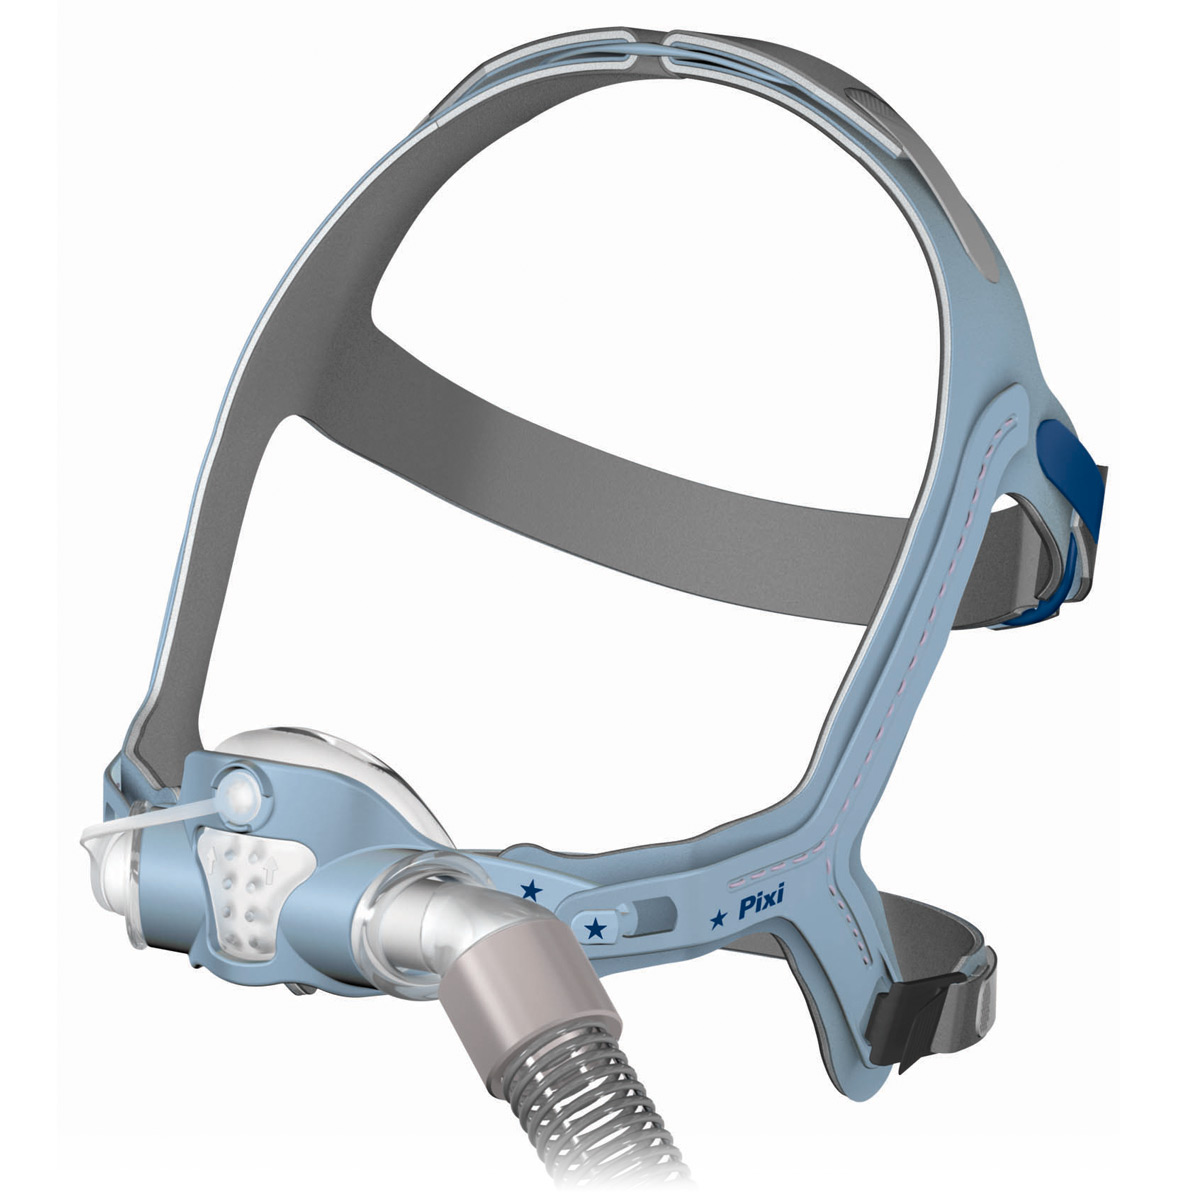 Pixi Pediatric Nasal Cpap Mask Pack With Headgear Ages 2